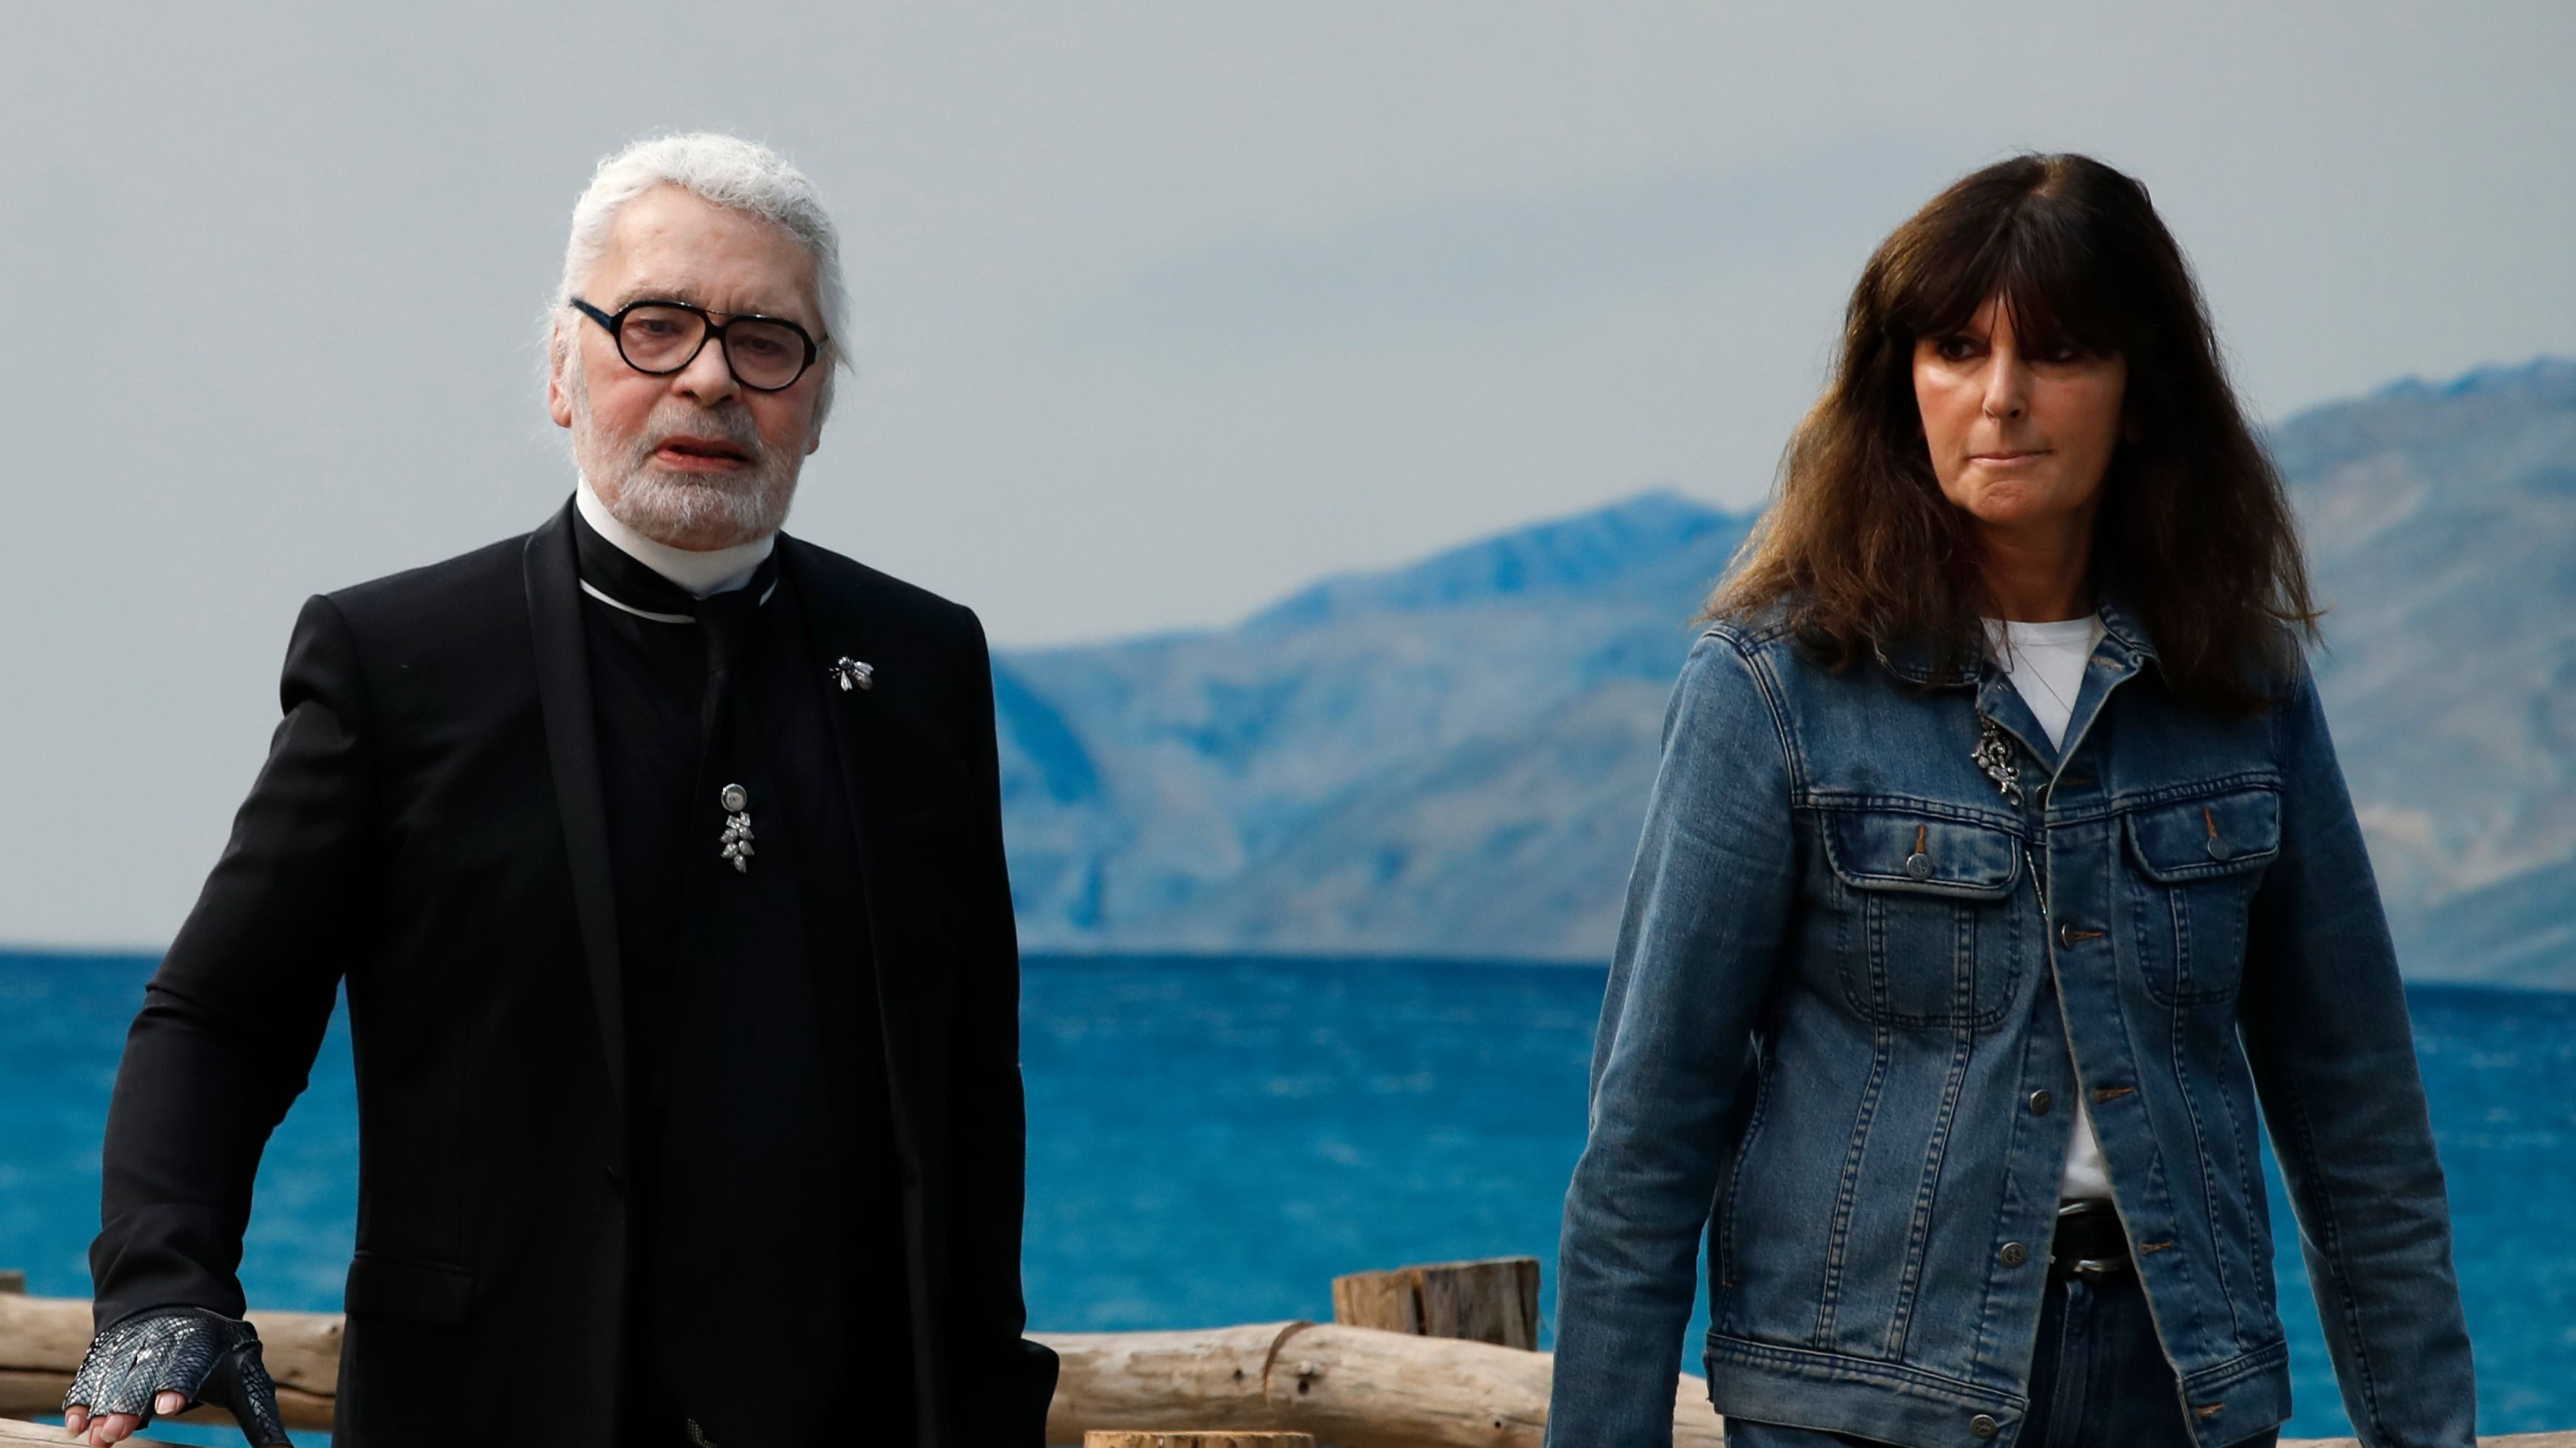 FILE - In this Oct.2, 2018 file photo, French fashion studio director Virginie Viard and German fashion designer Karl Lagerfeld pose after the presentation of Chanel Spring/Summer 2019 ready-to-wear fashion collection in Paris. Chanel said Tuesday, Feb.19, 2019 that Virginie Viard, his longtime head of studio, will create the house's upcoming collections after Lagerfelfd died. Chanel did not say whether her appointment was permanent. (AP Photo/Christophe Ena, File)